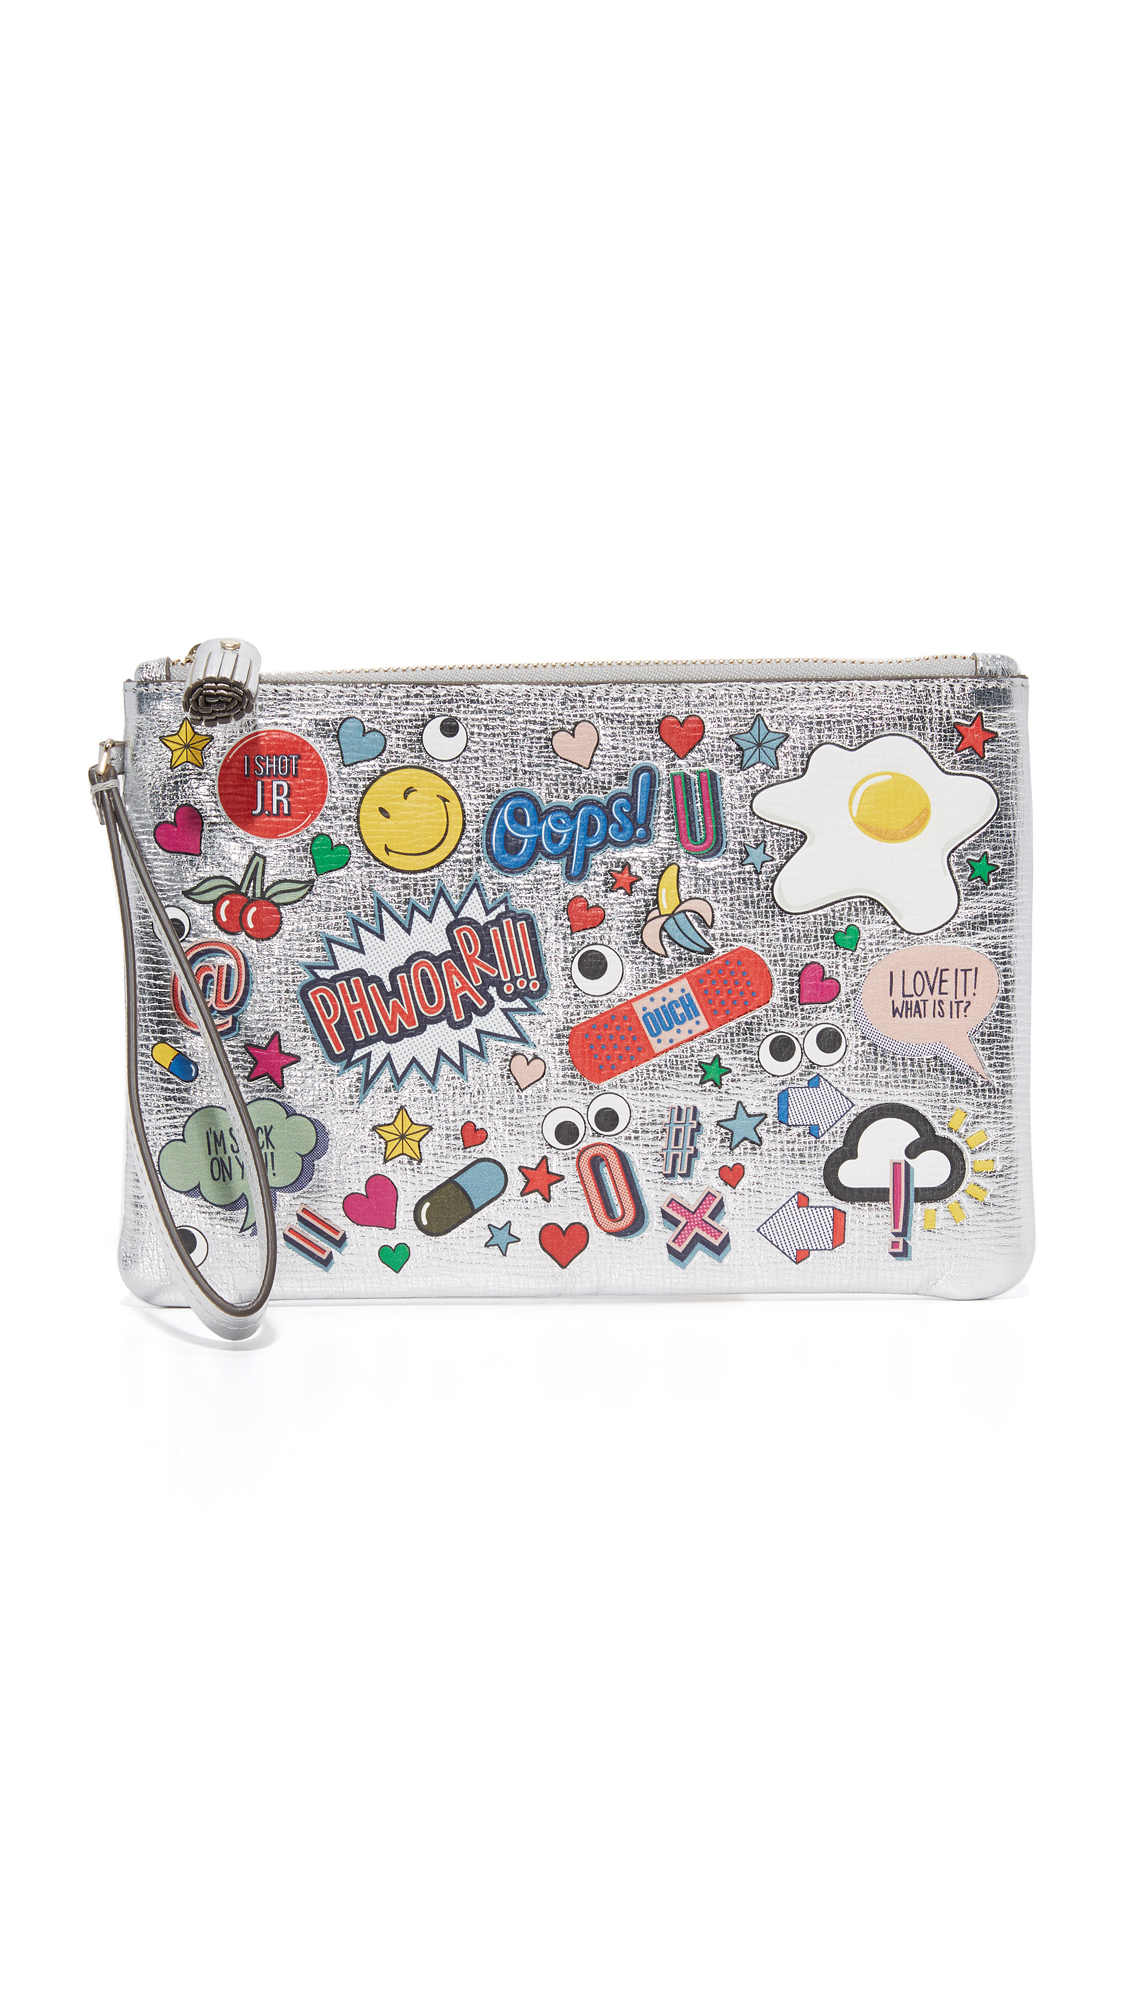 Metallic saffiano leather and an eclectic collection of graphics lend an eye catching look to this Anya Hindmarch pouch. A wrist strap hangs from the side. Top zip and suede lined interior with 2 card slots and